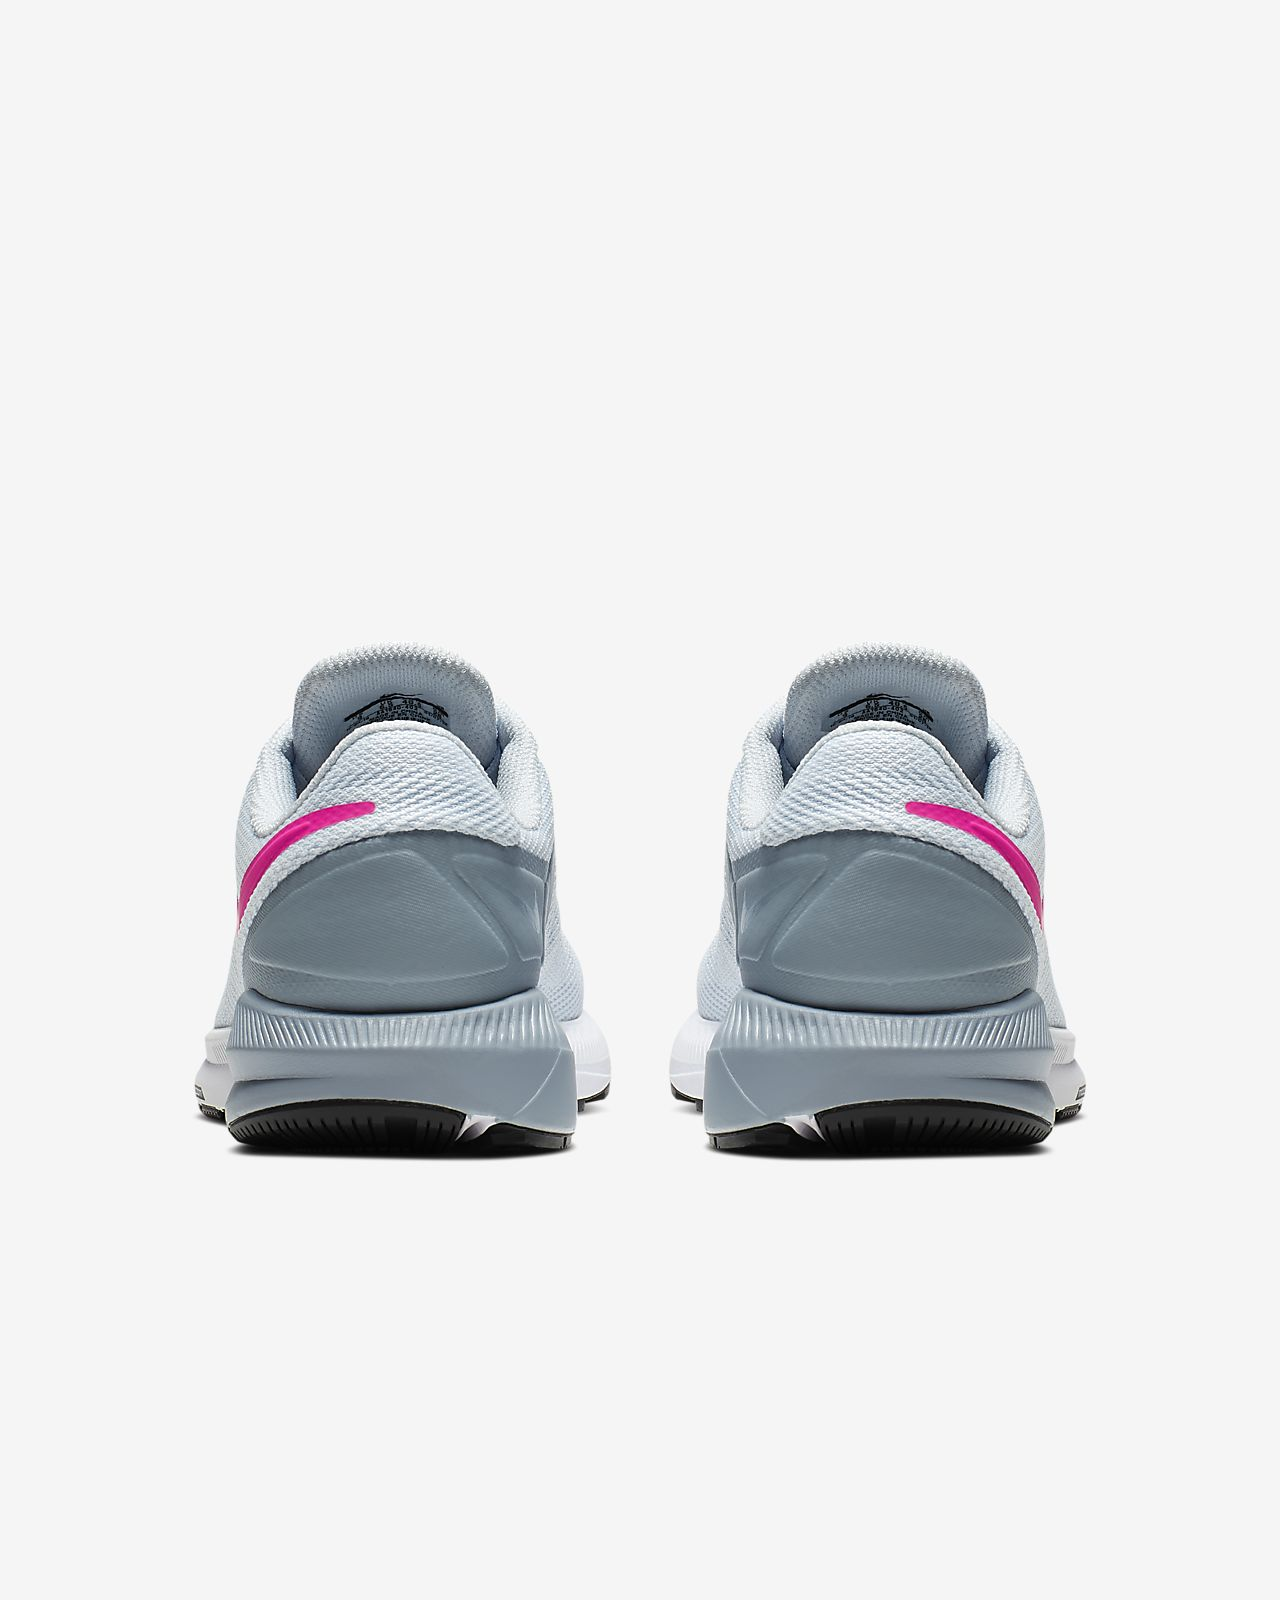 buy online a0a9f 414dc ... Nike Air Zoom Structure 22 Women s Running Shoe